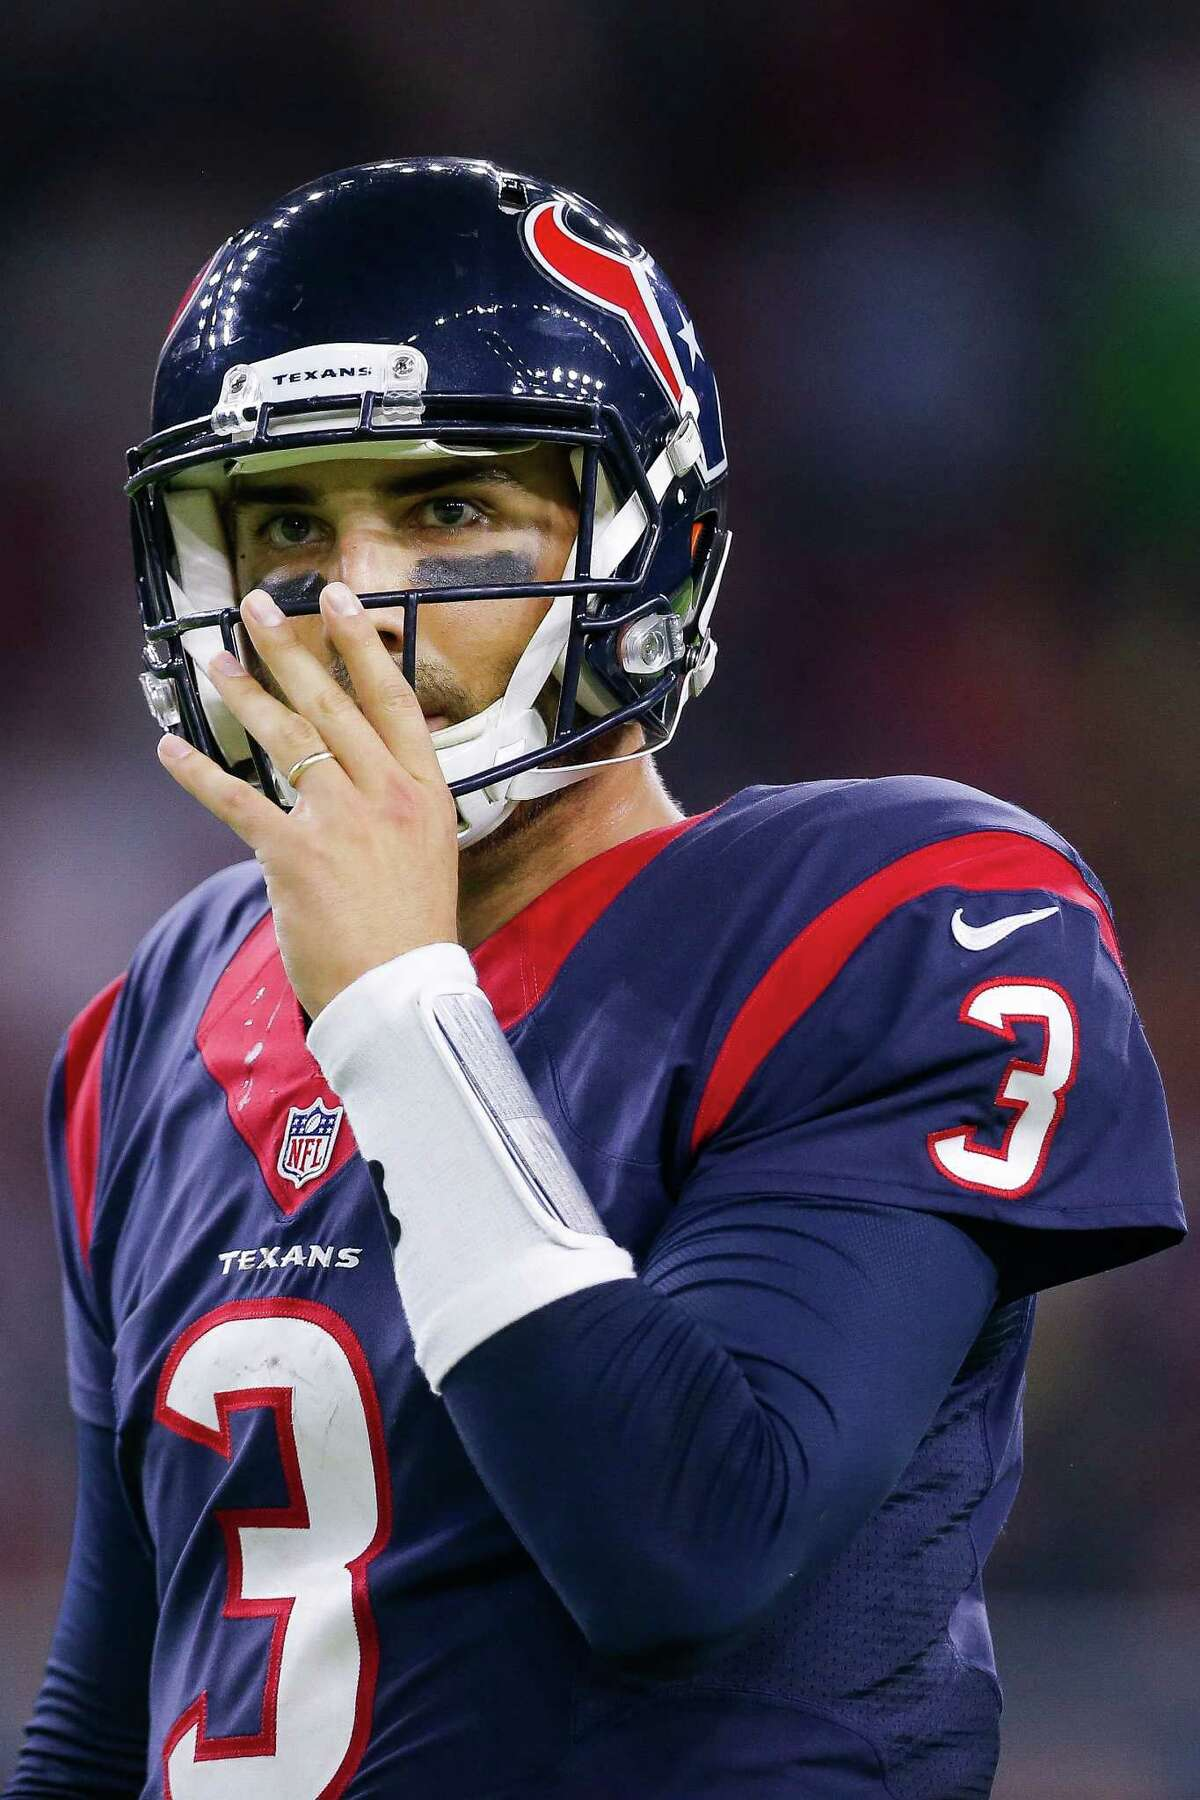 Houston Texans quarterback Tom Savage (3) looks to the sideline during the second half as the Houston Texans take on the Cincinnati Bengals at NRG Stadium Saturday, Dec. 24, 2016 in Houston. ( Michael Ciaglo / Houston Chronicle )